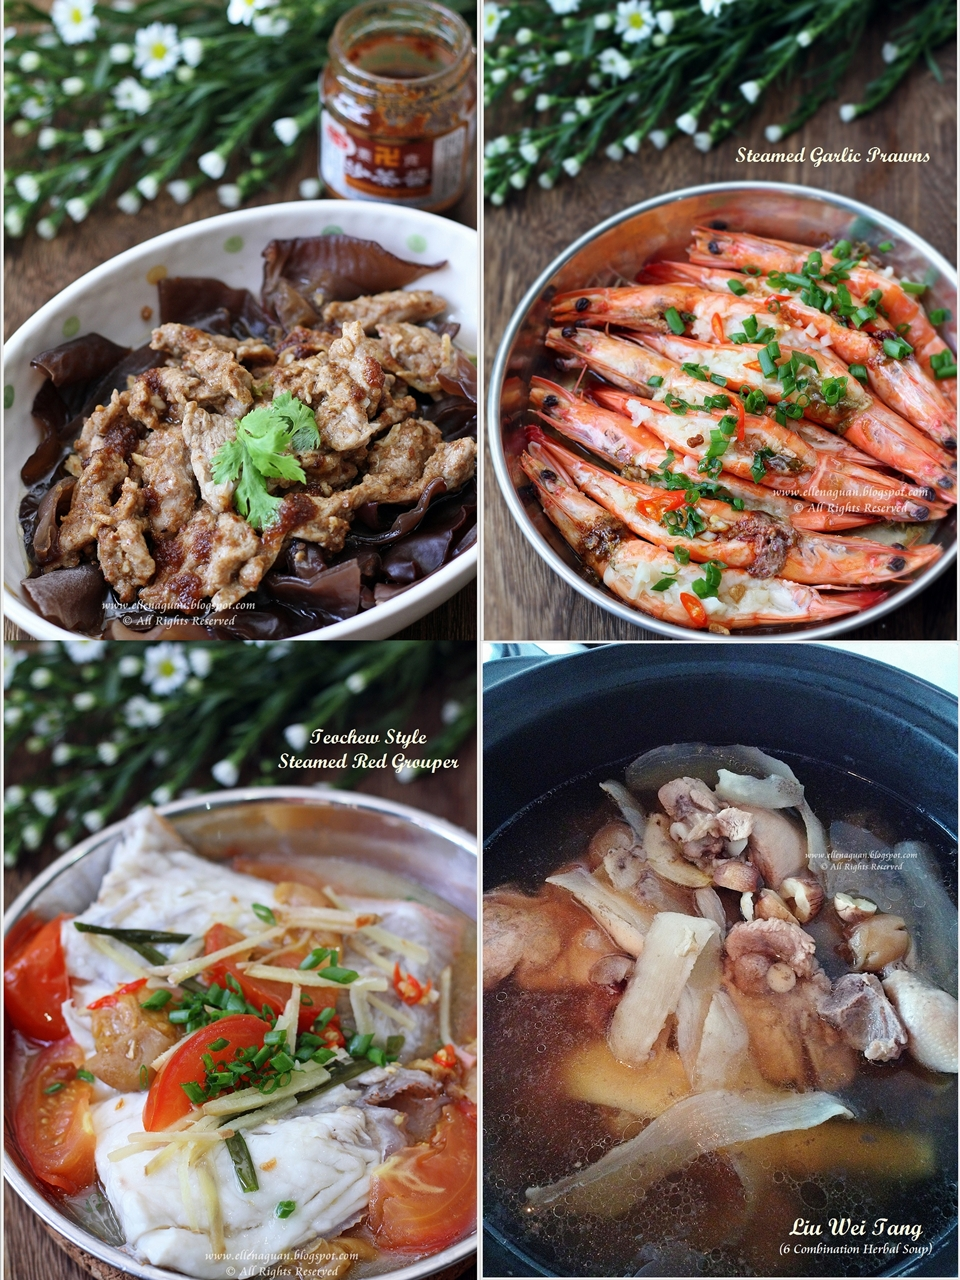 Cuisine paradise singapore food blog recipes reviews and travel quick recipes on 3 dishes 1 soup forumfinder Choice Image